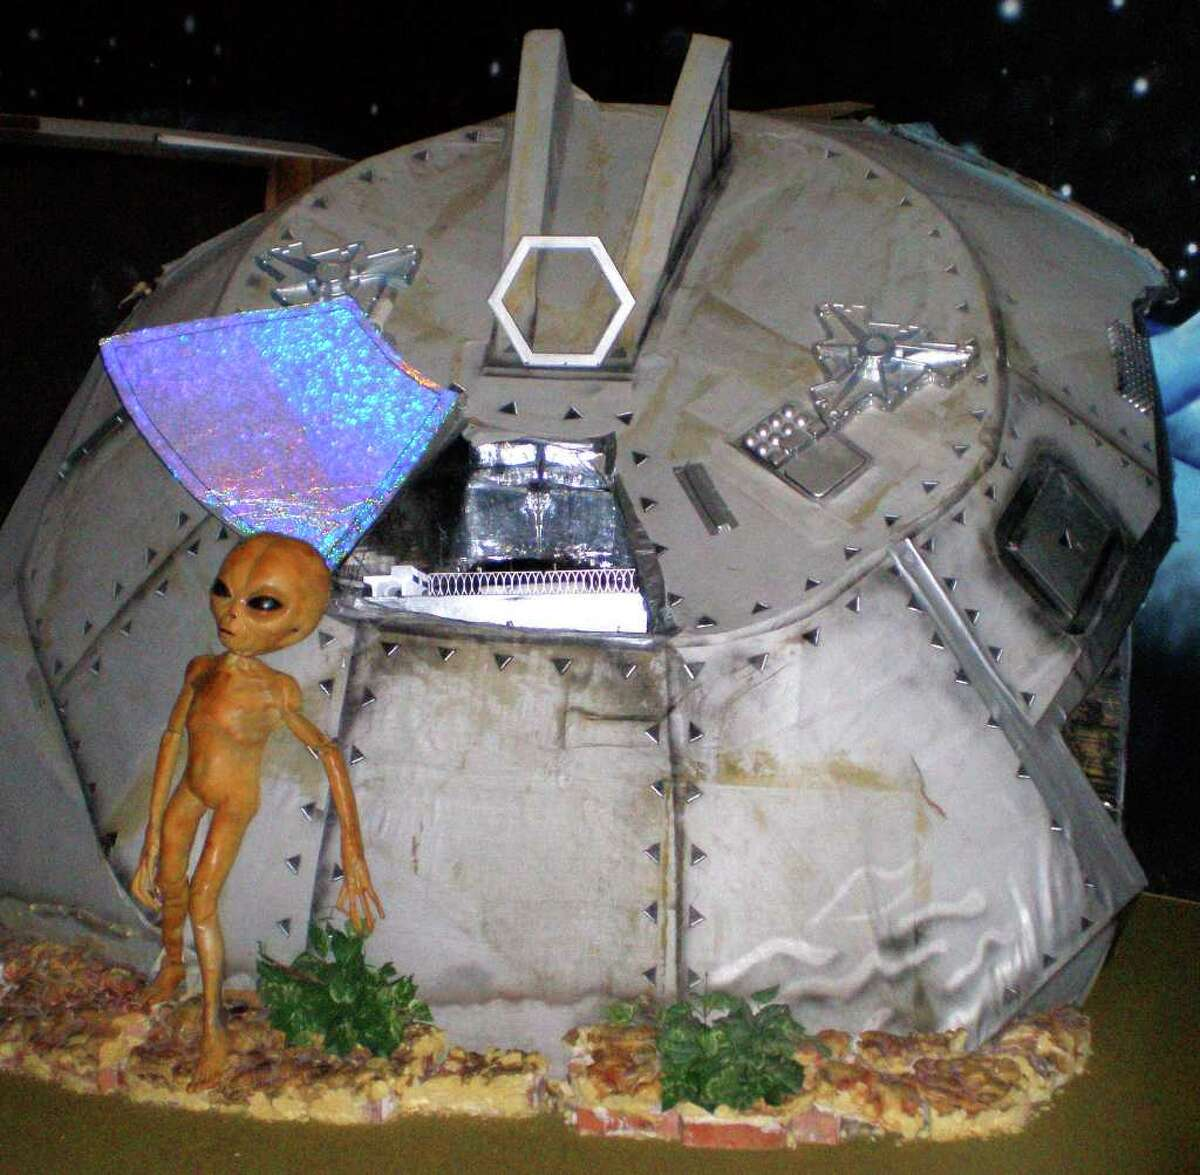 ** FOR IMMEDIATE RELEASE **This photo taken in December 2006 at the Area 51 exhibit at the Alien Zone in Roswell, N.M., shows an alien standing outside a crashed spaceship.